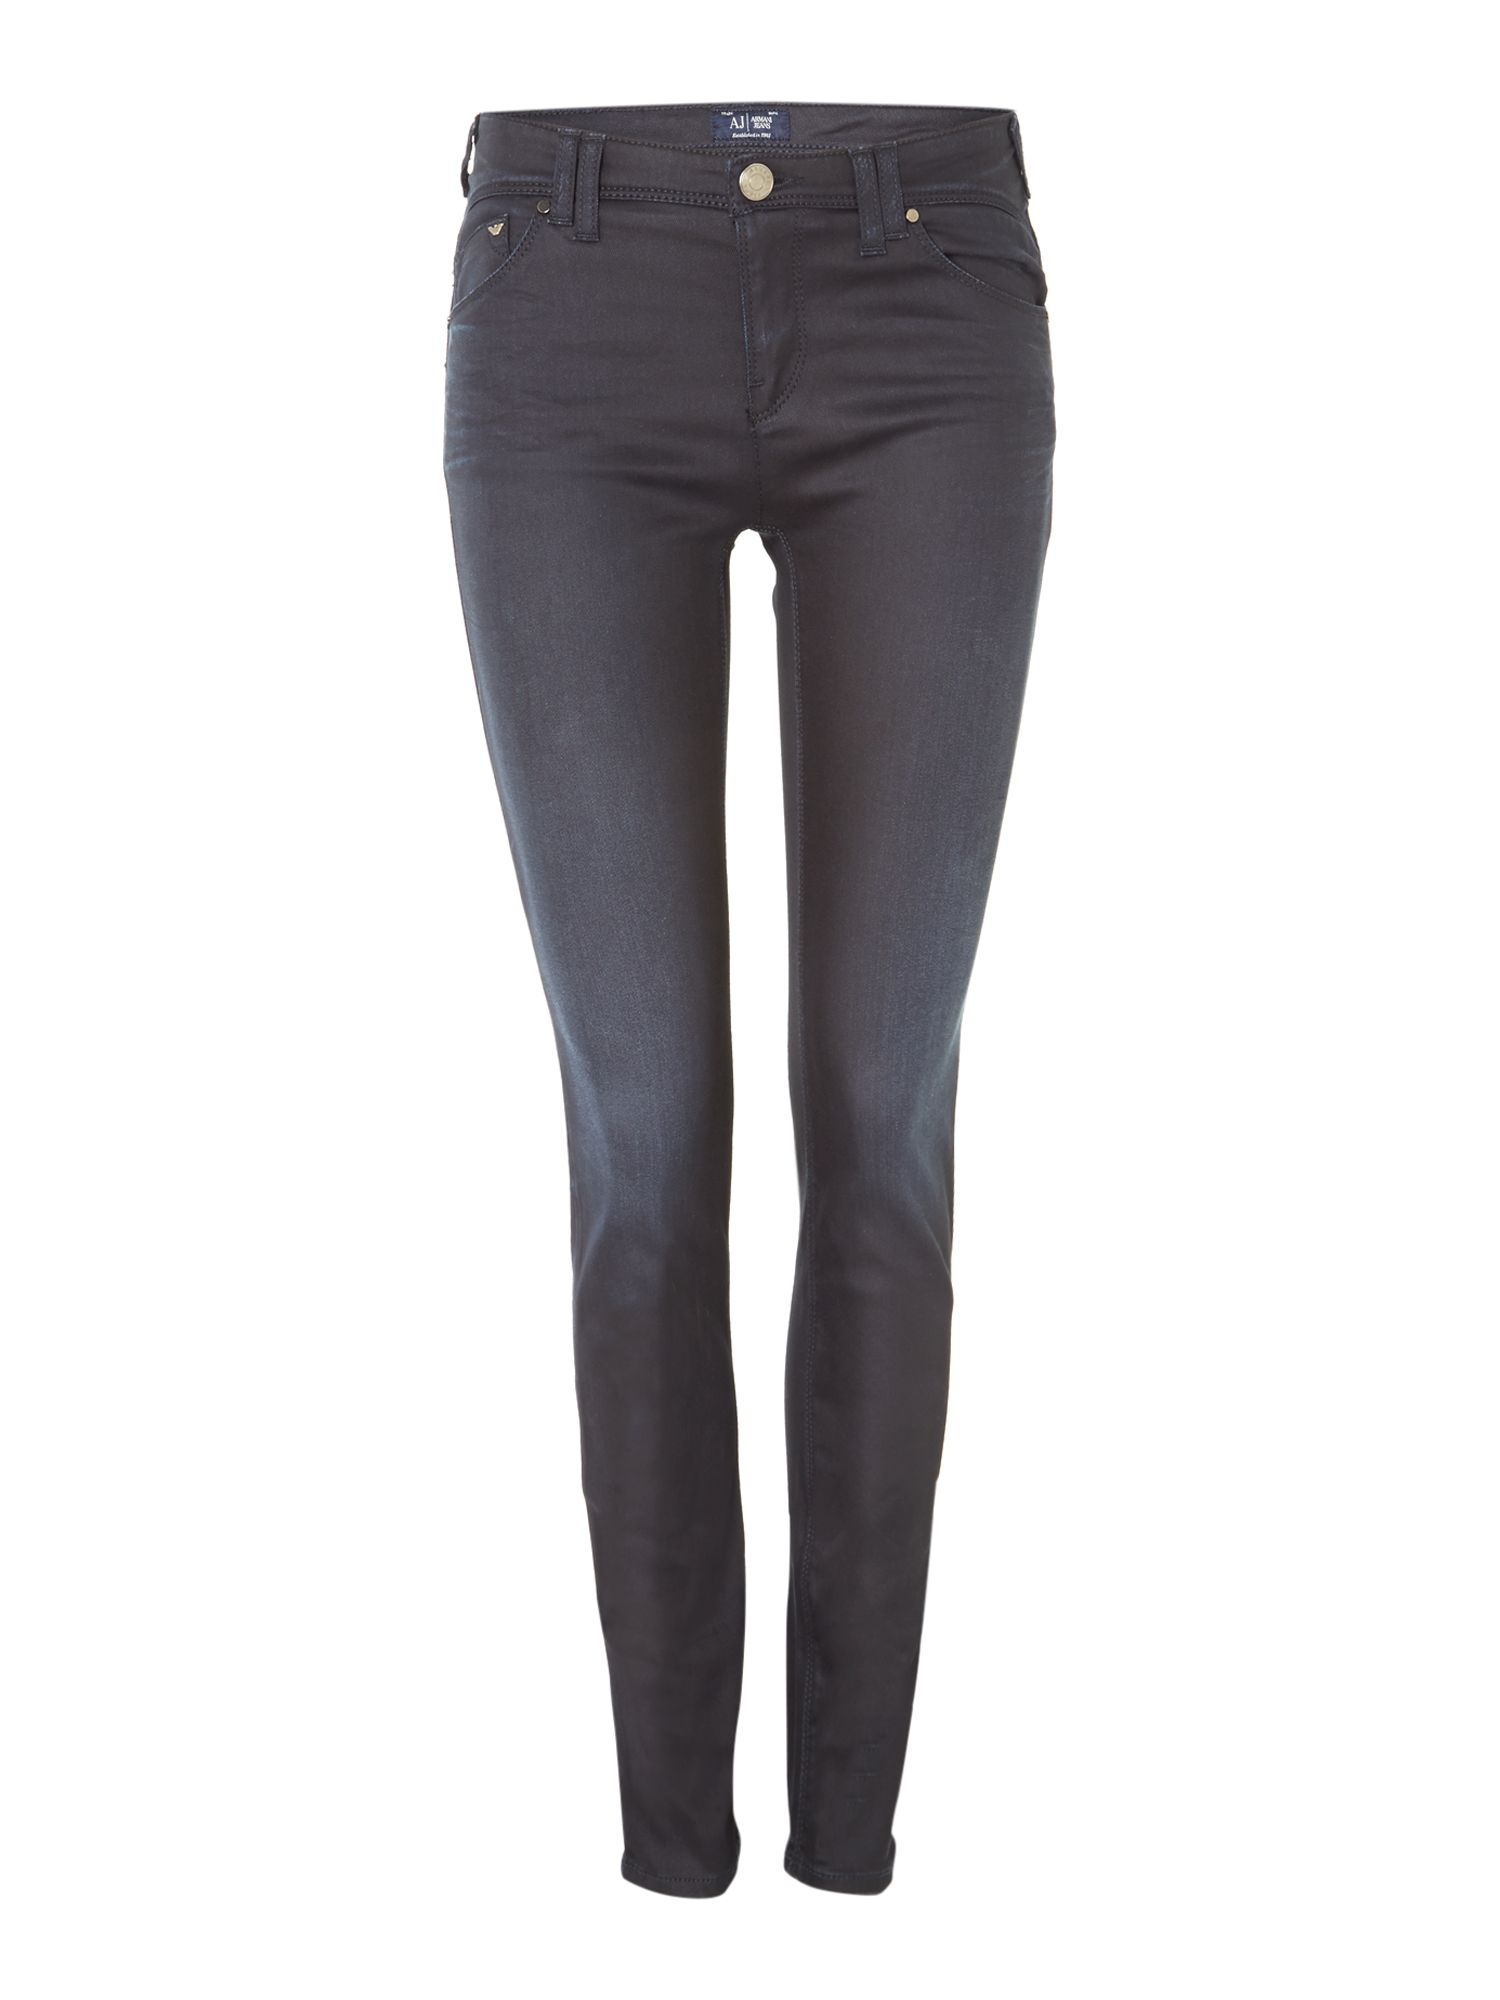 J28 coated skinny jeans